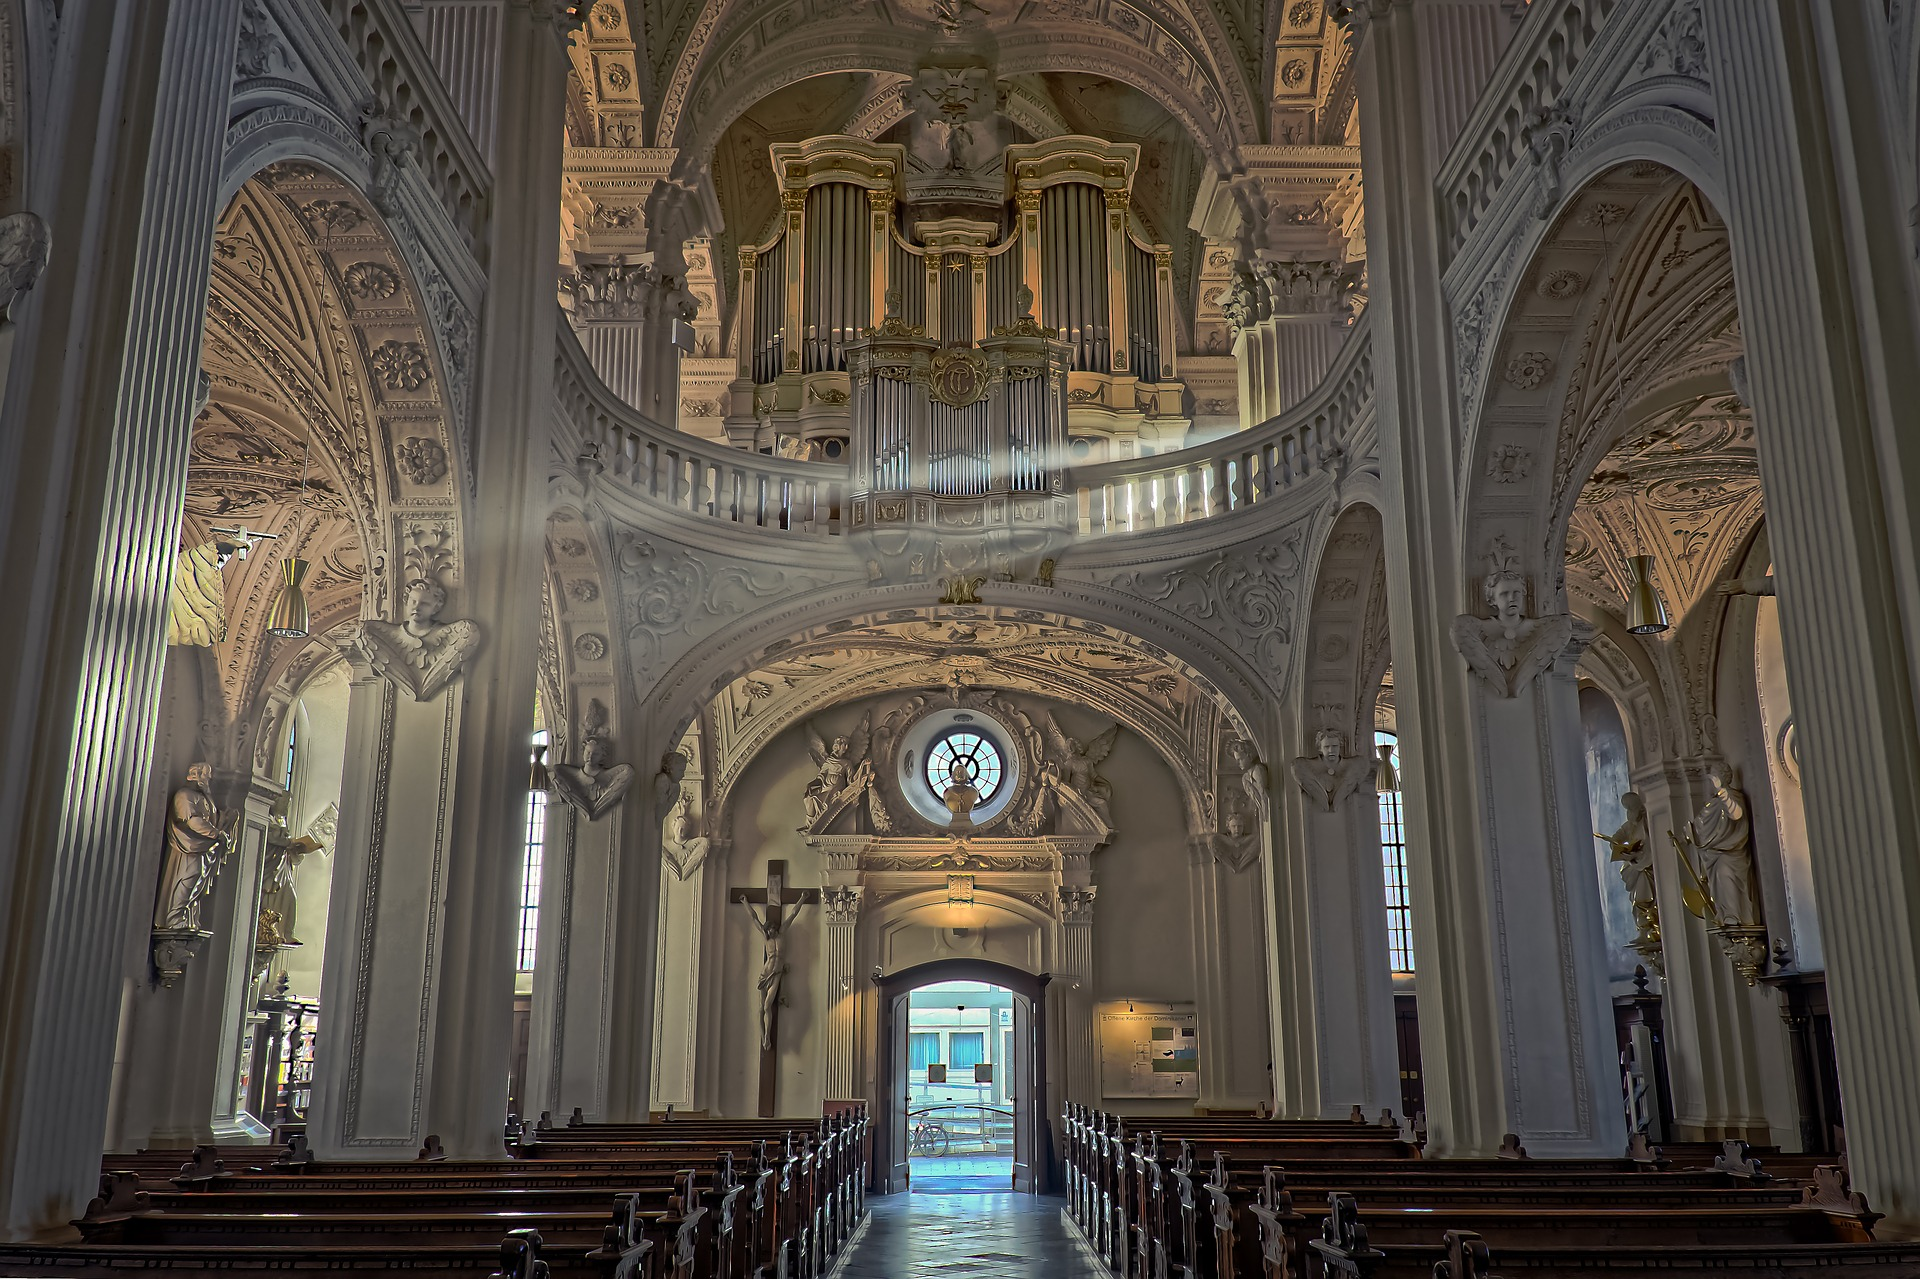 Inside of a large church